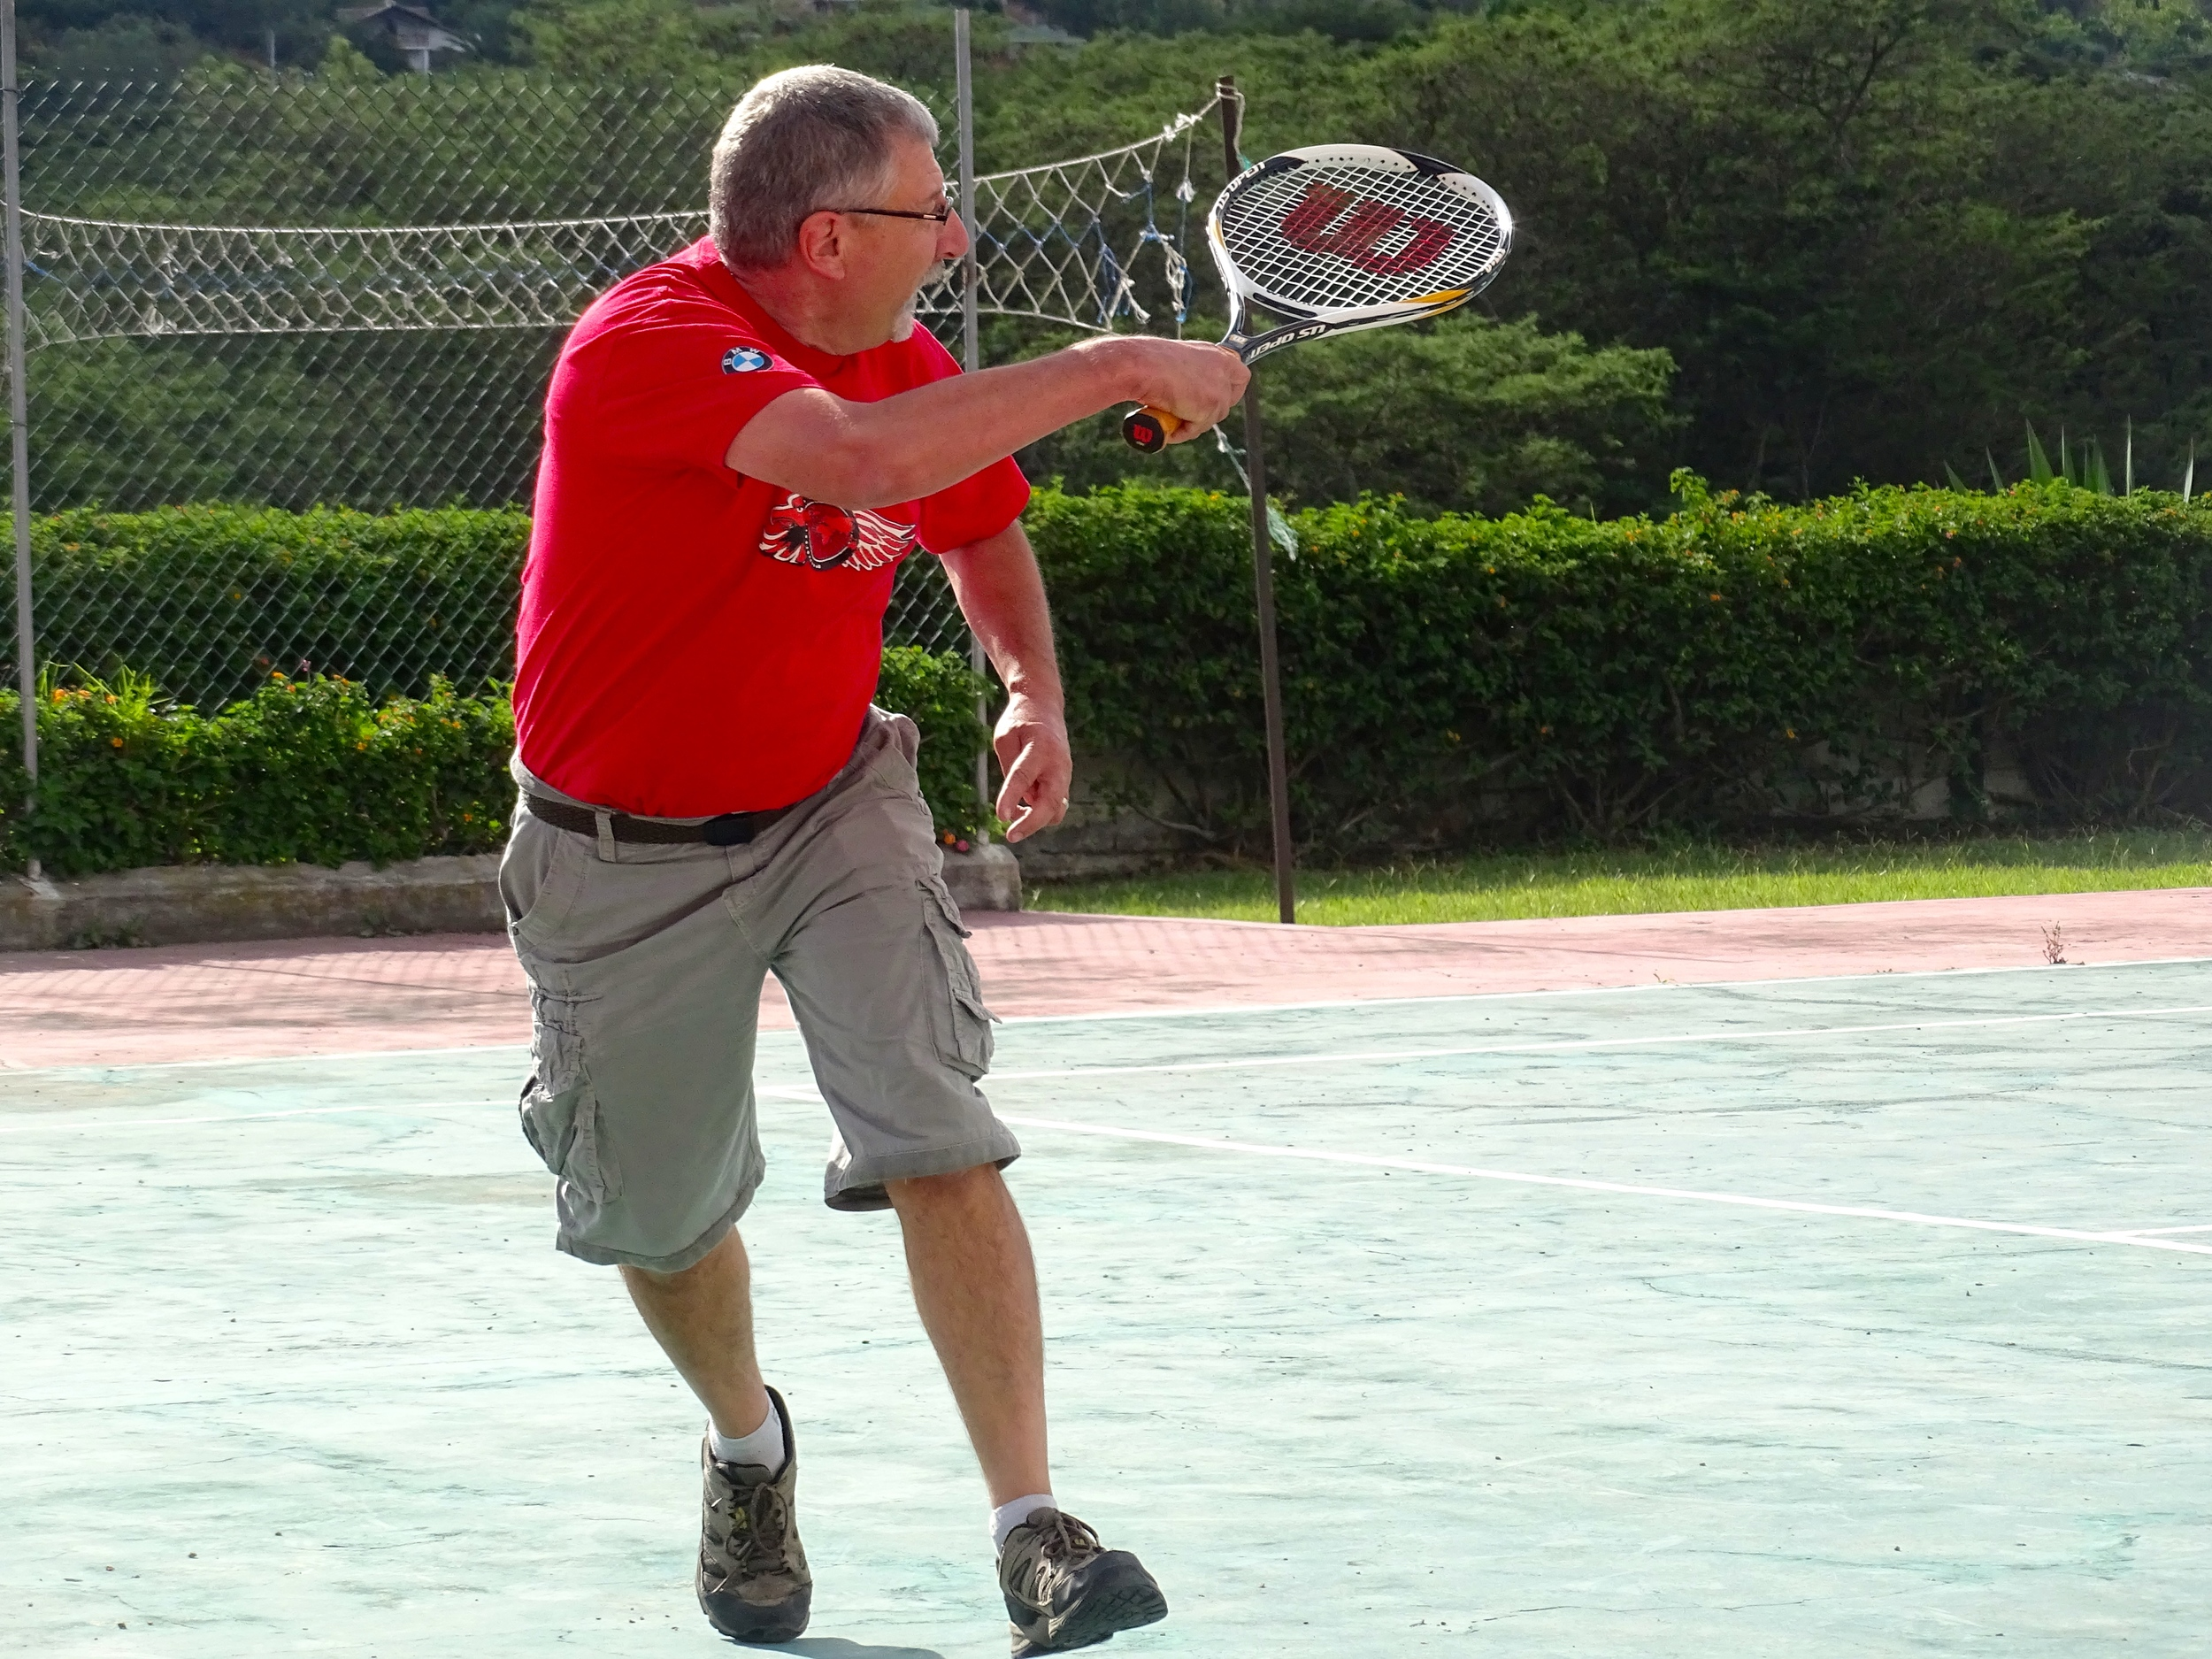 We got to play tennis. This is Keith in action! He did great.